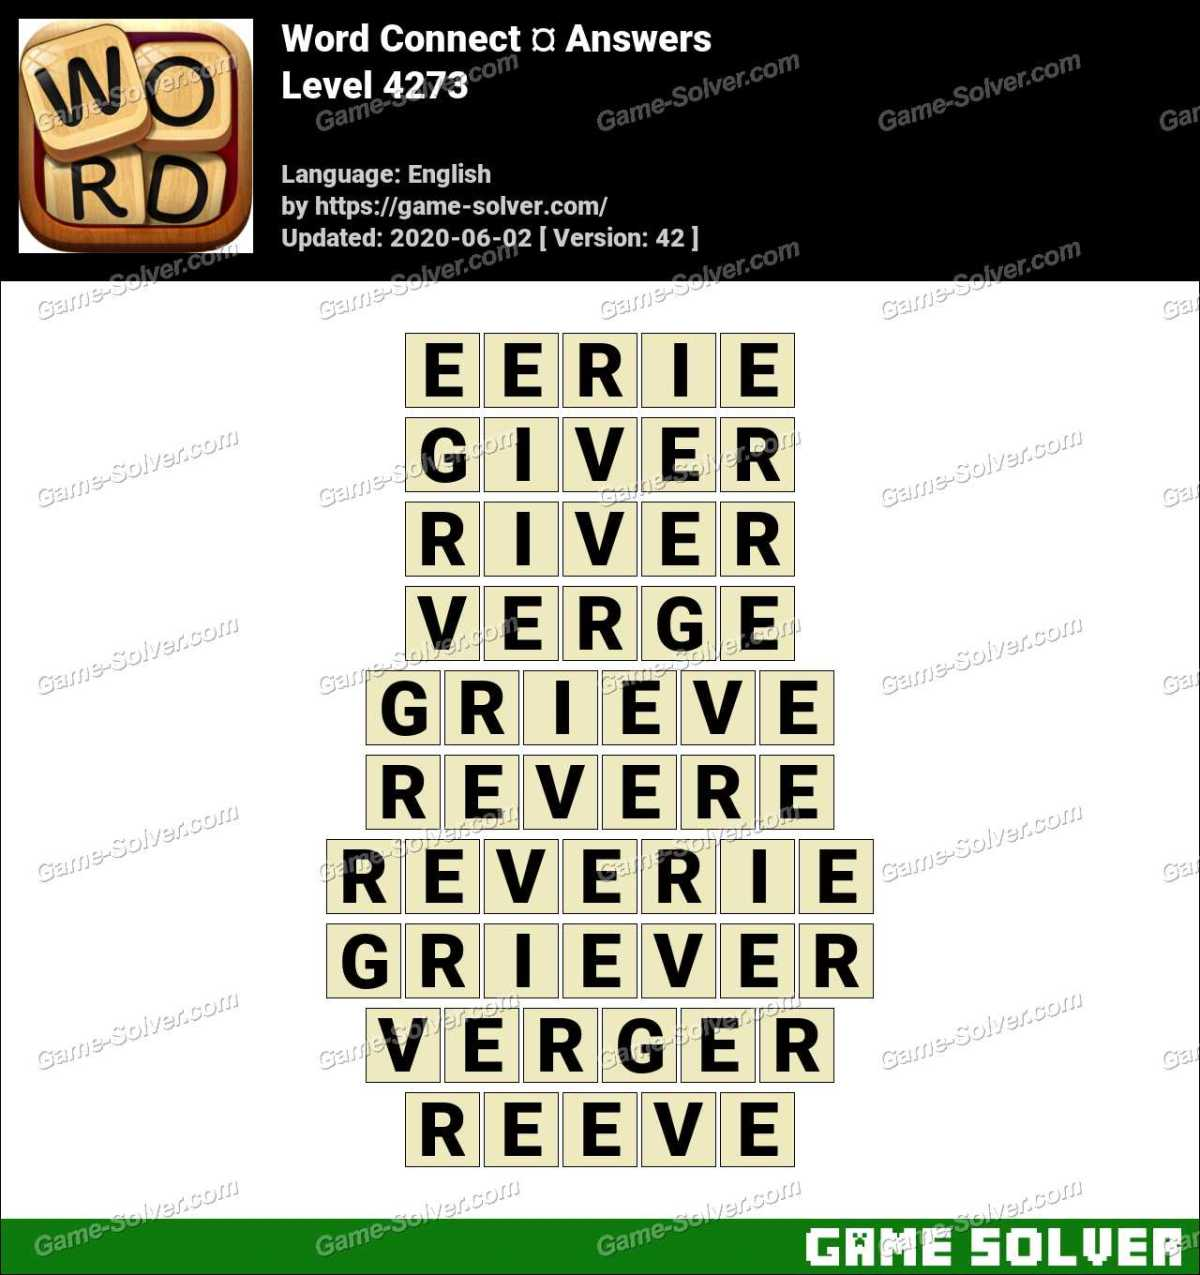 Word Connect Level 4273 Answers